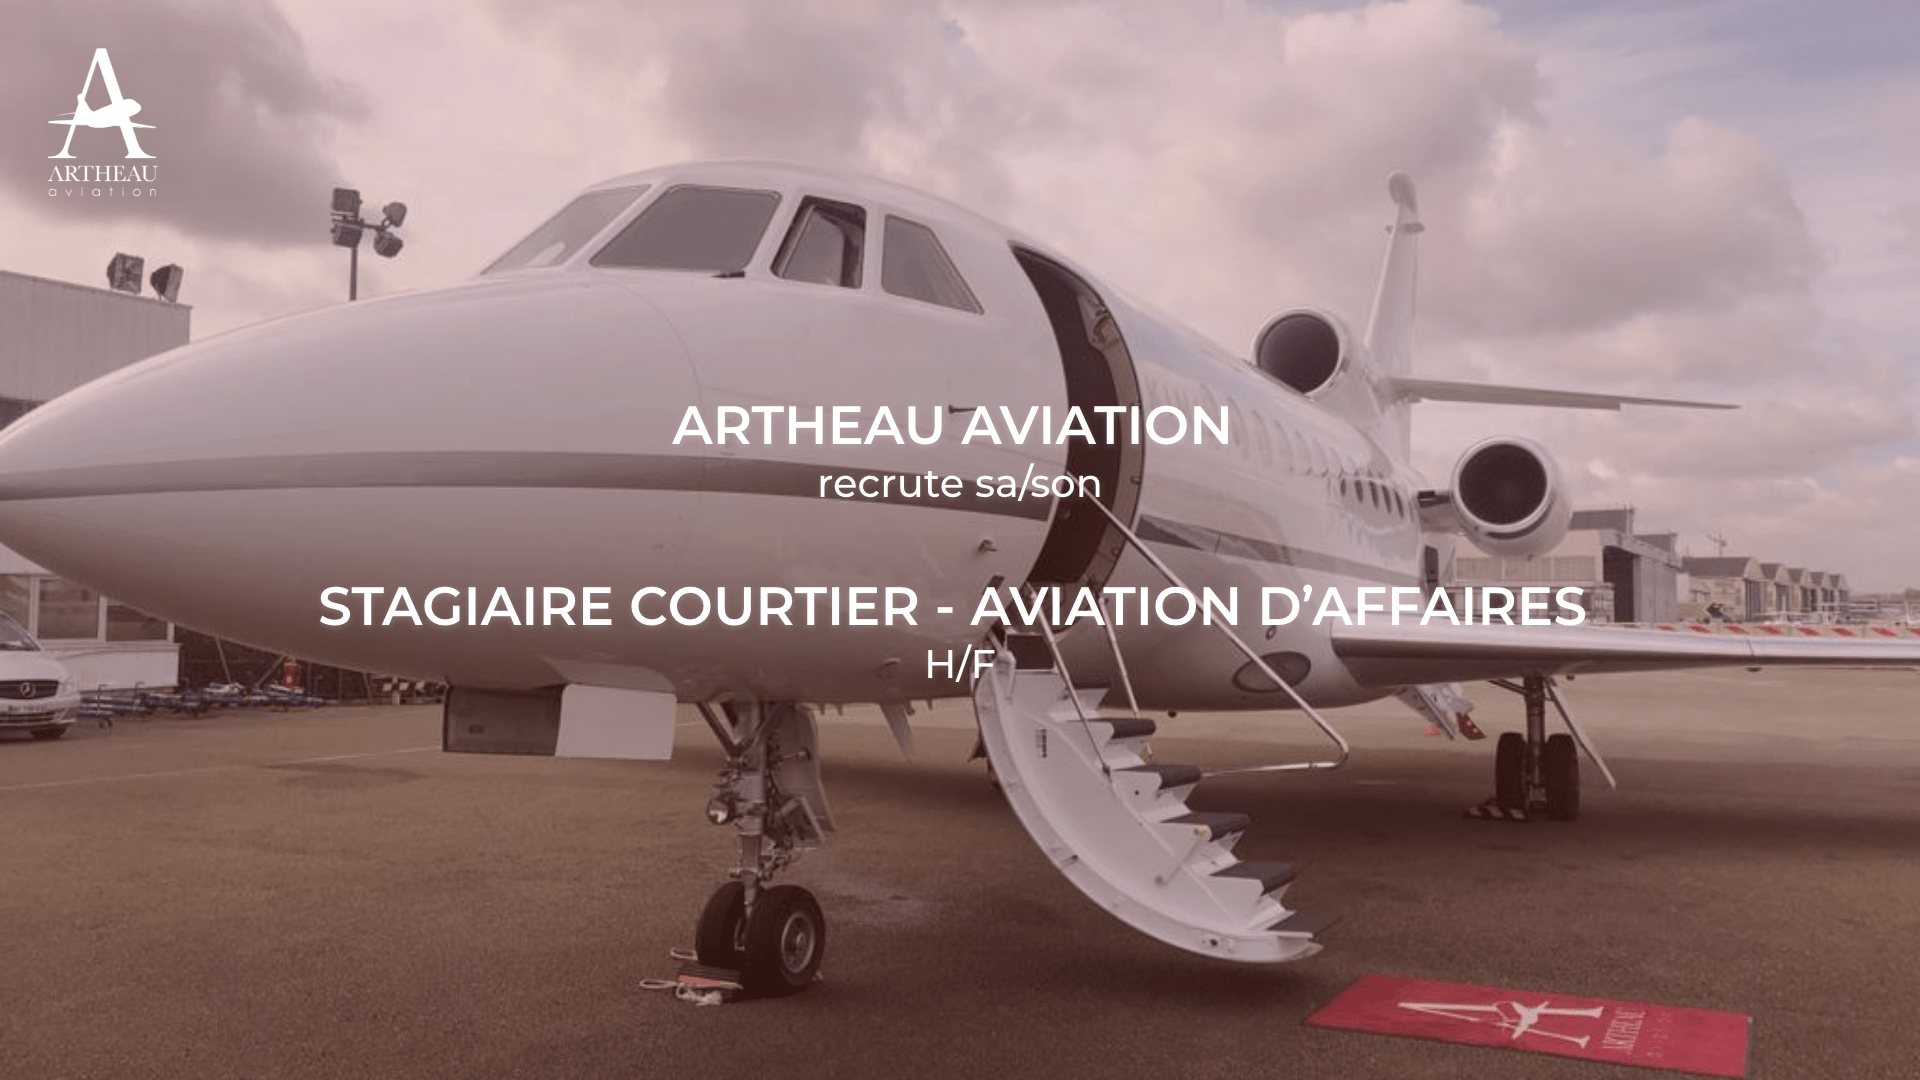 Artheau Aviation cherche sa/son futur Stagiaire Courtier – Aviation d'Affaires (H/F)